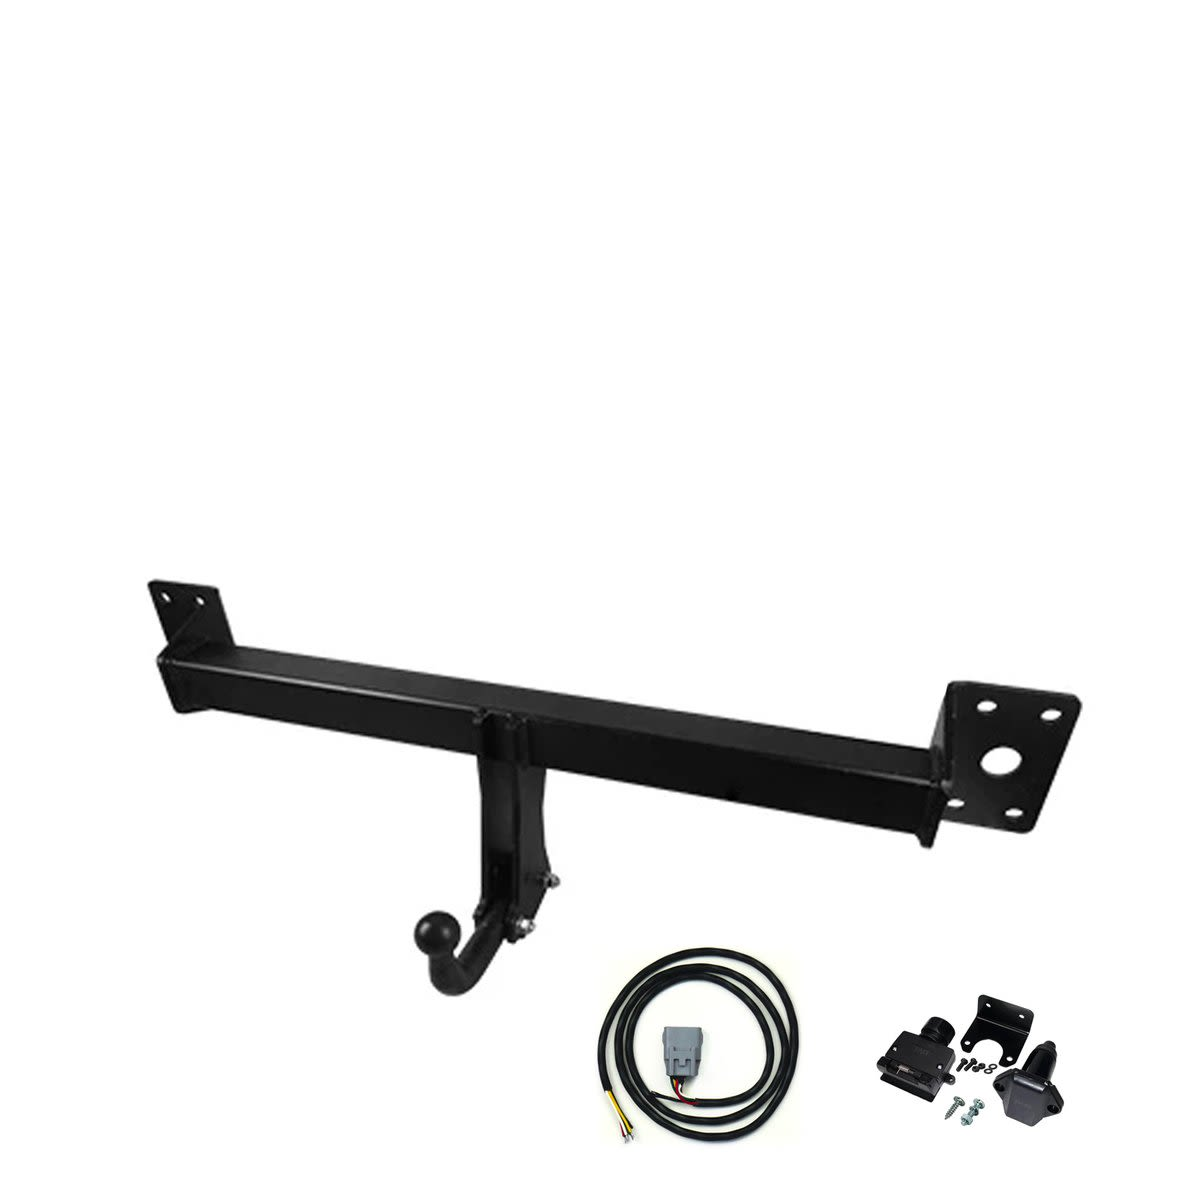 TAG Towbars European Style Tongue to suit BMW 5 (04/1996 - 09/2003)